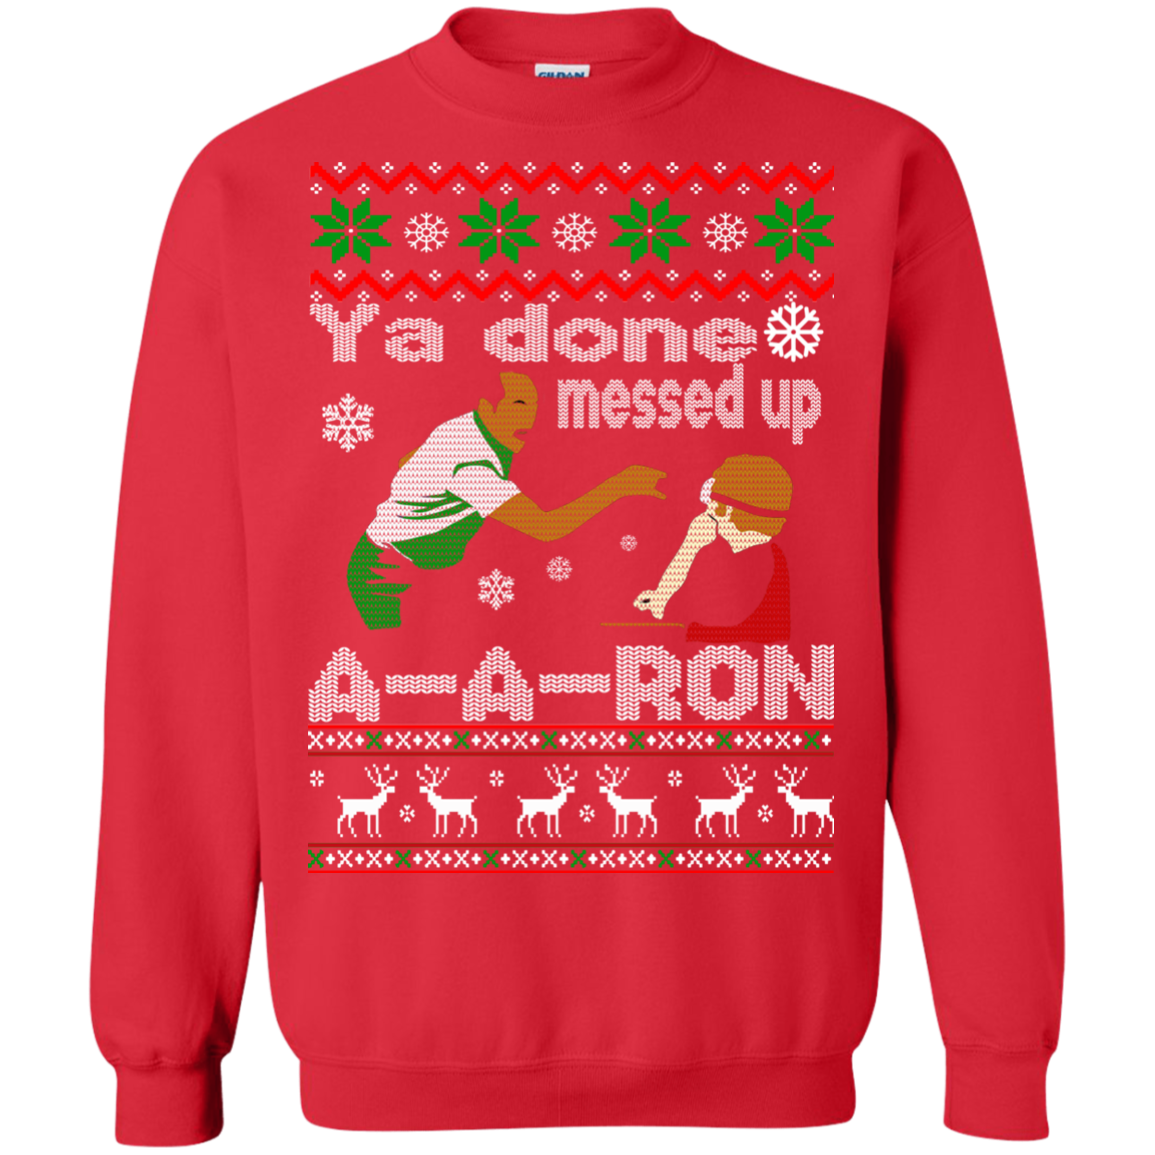 Aaron - Ya done messed up A-a-ron Ugly Christmas Sweater